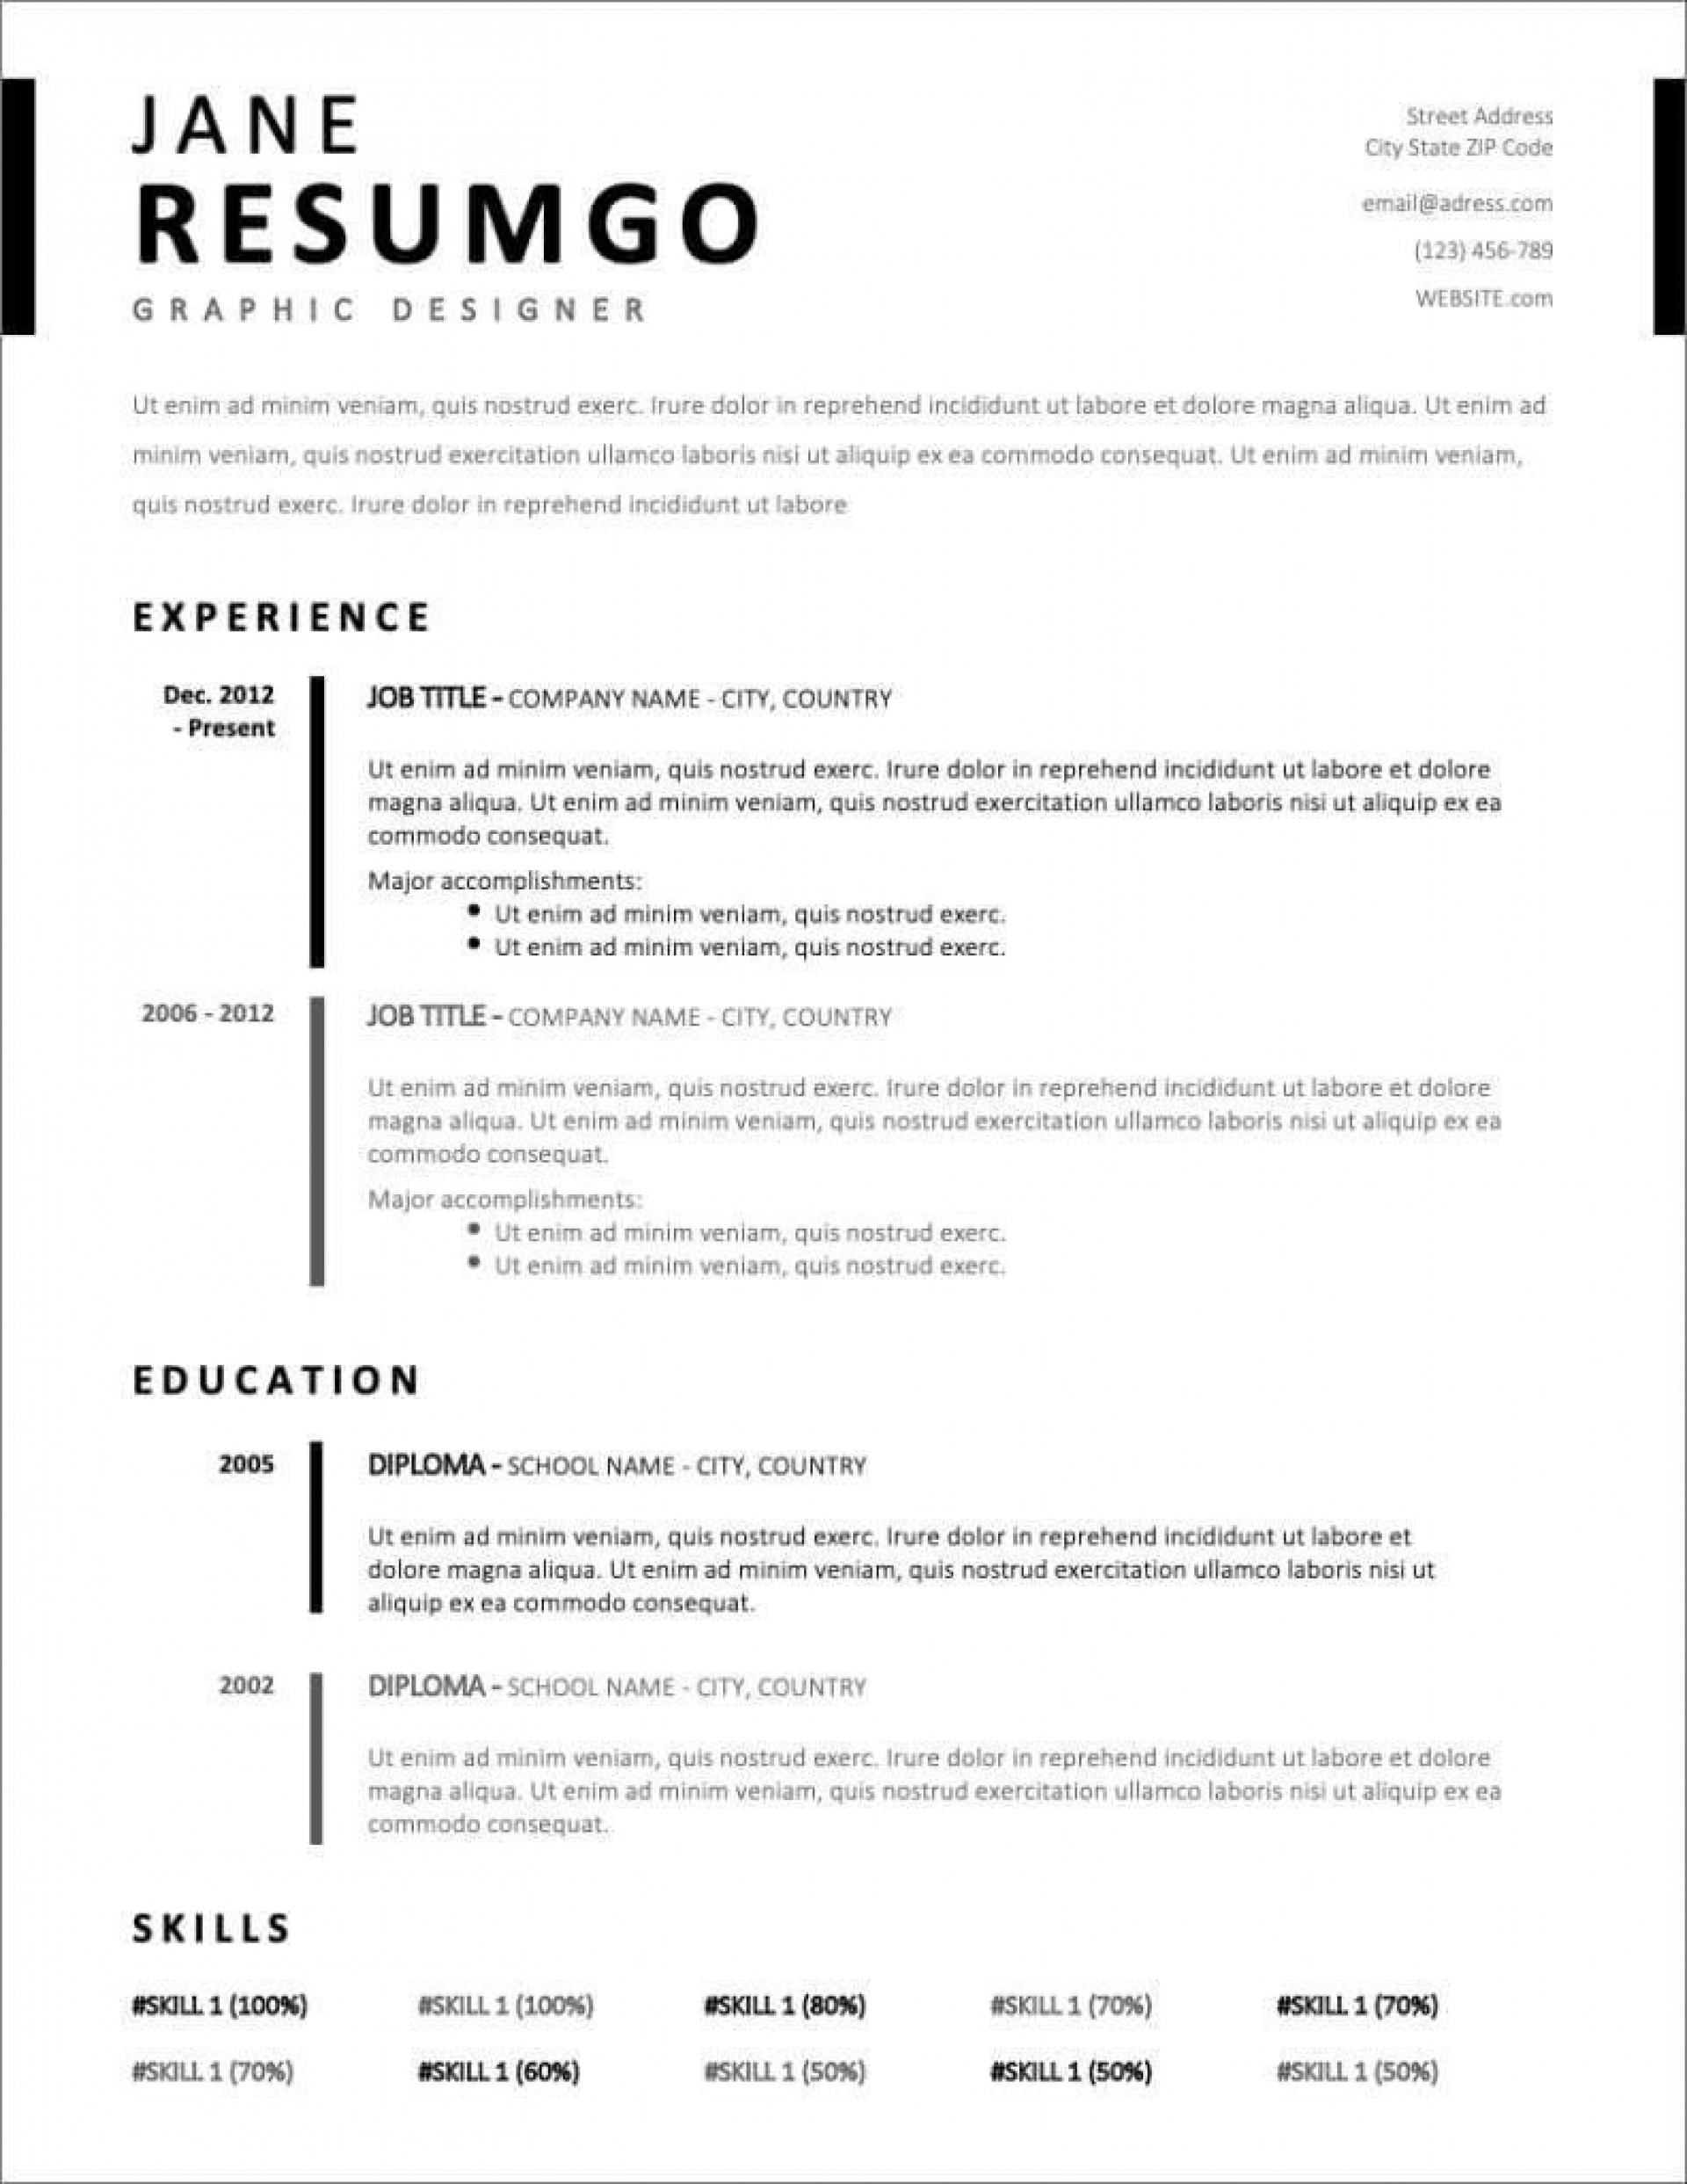 005 Fearsome Free Basic Resume Template High Def  Templates Online Microsoft Word1920